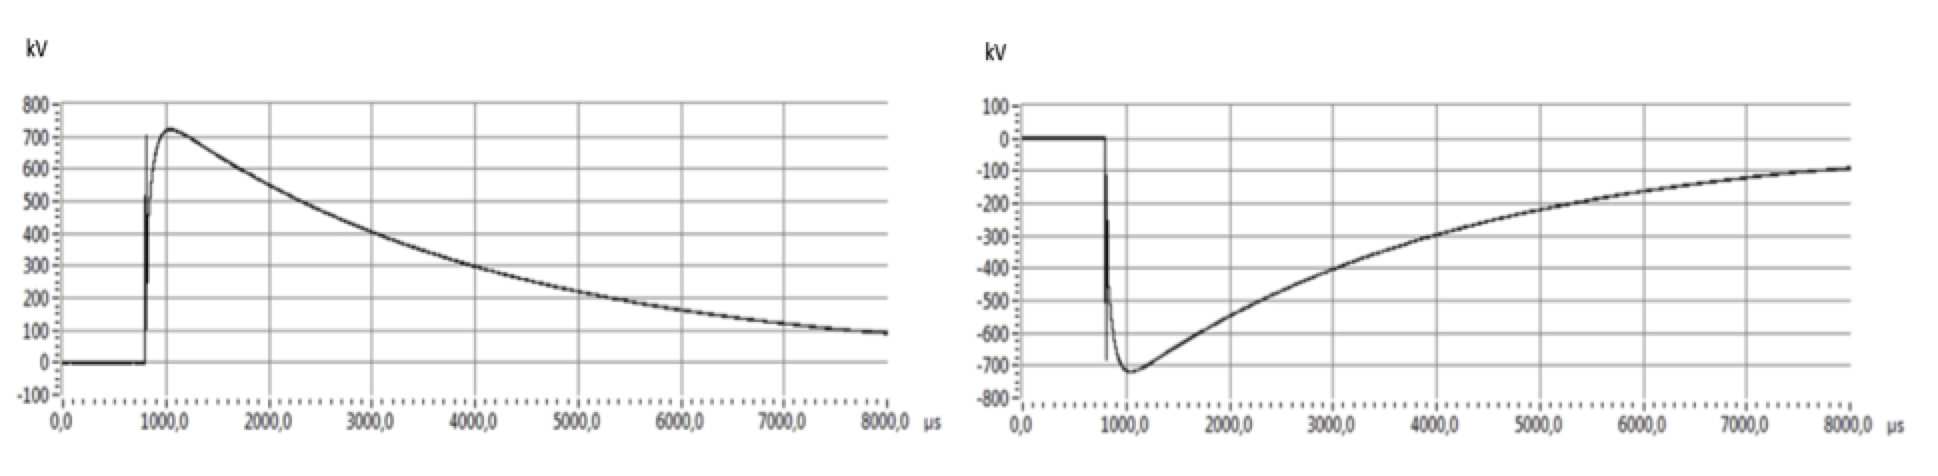 Testing 320 kV HVDC XLPE Cable Systems Representations of switching impulses waveforms measured by Divider 3